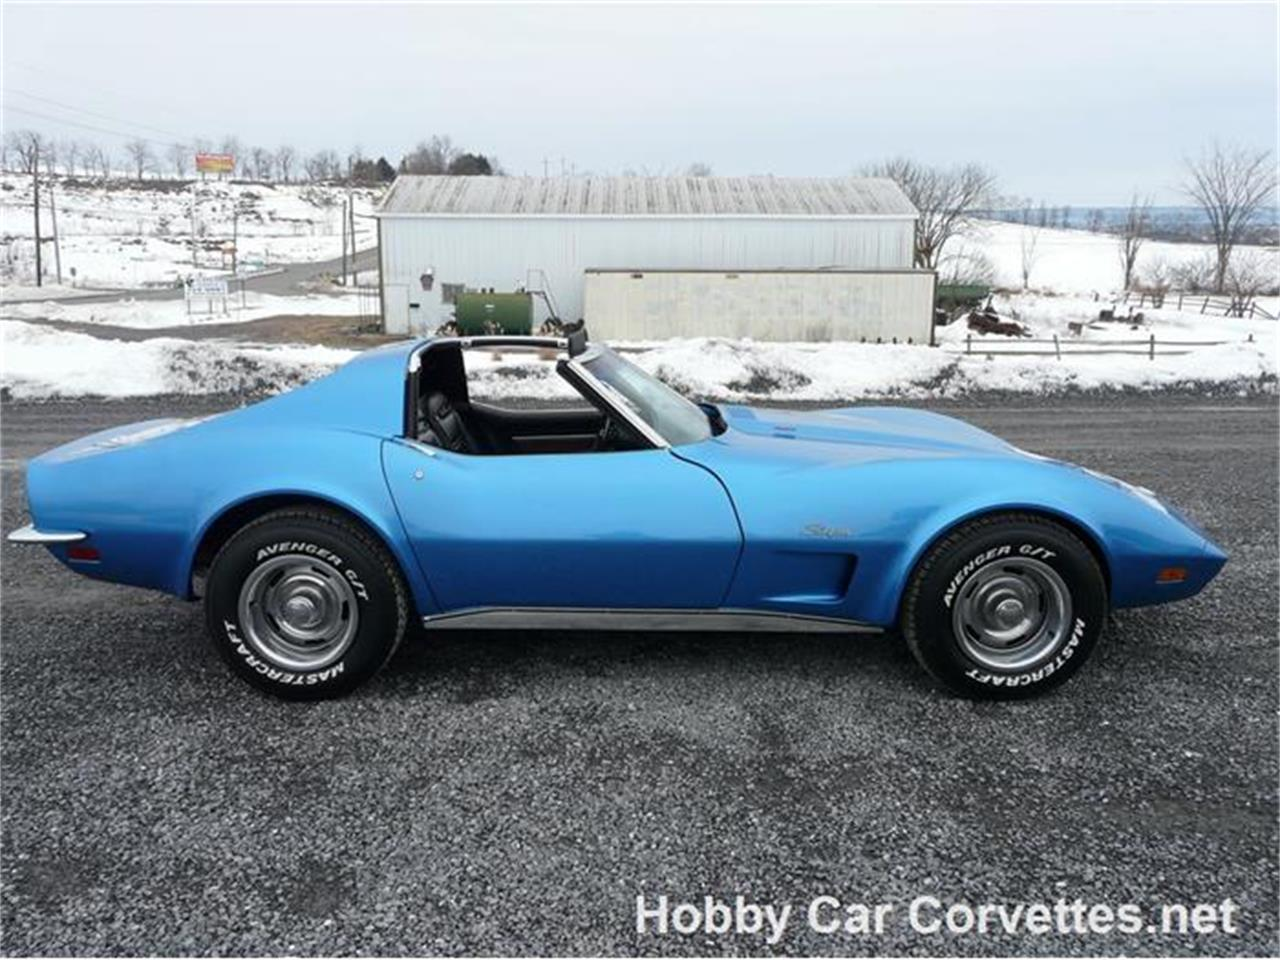 Large Picture of Classic 1973 Corvette located in Martinsburg Pennsylvania - $39,999.00 Offered by Hobby Car Corvettes - GH05